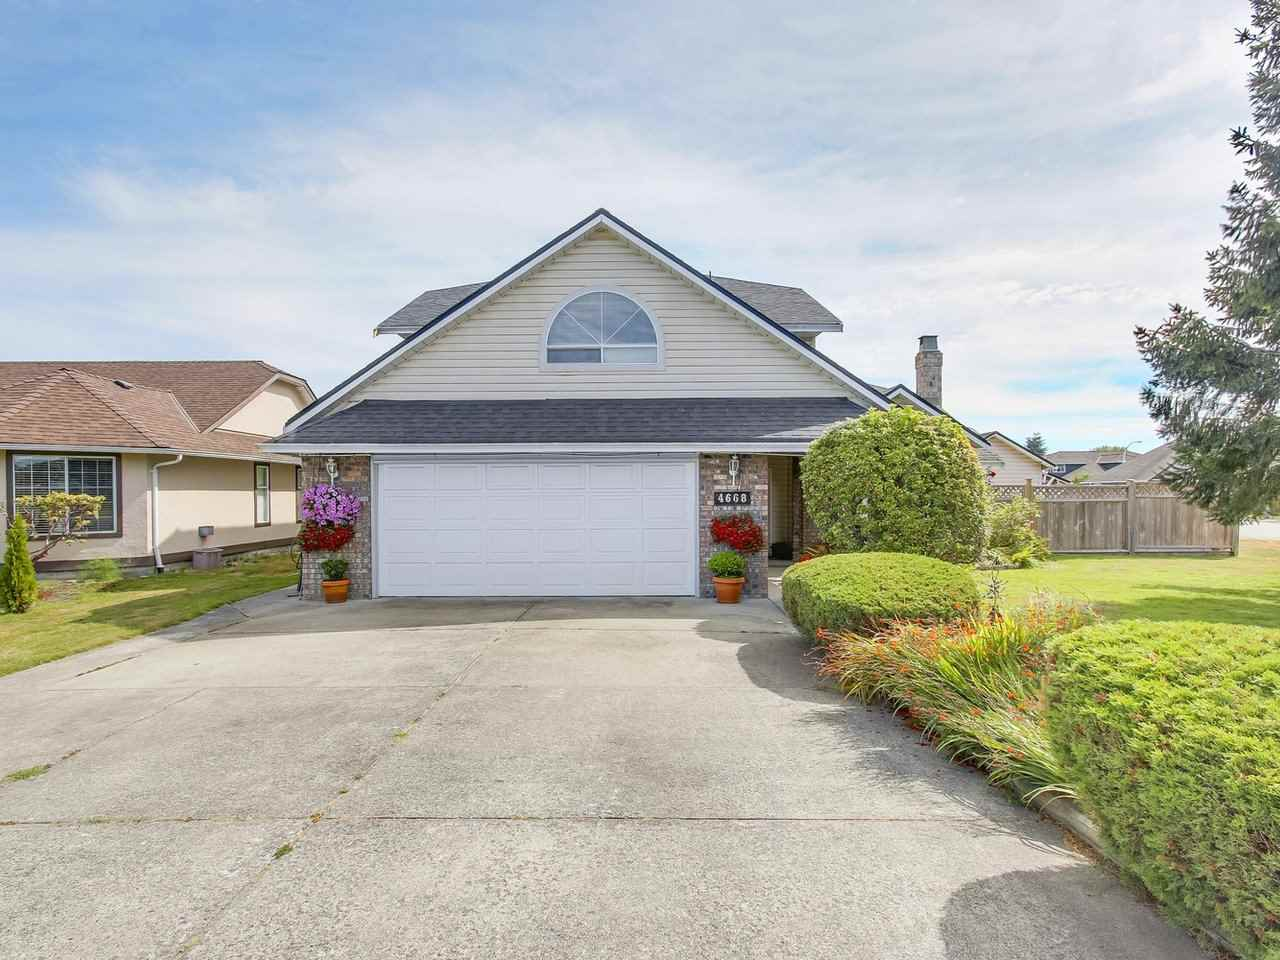 Removed: 4668 66 Street, Delta, BC - Removed on 2018-09-25 15:09:05